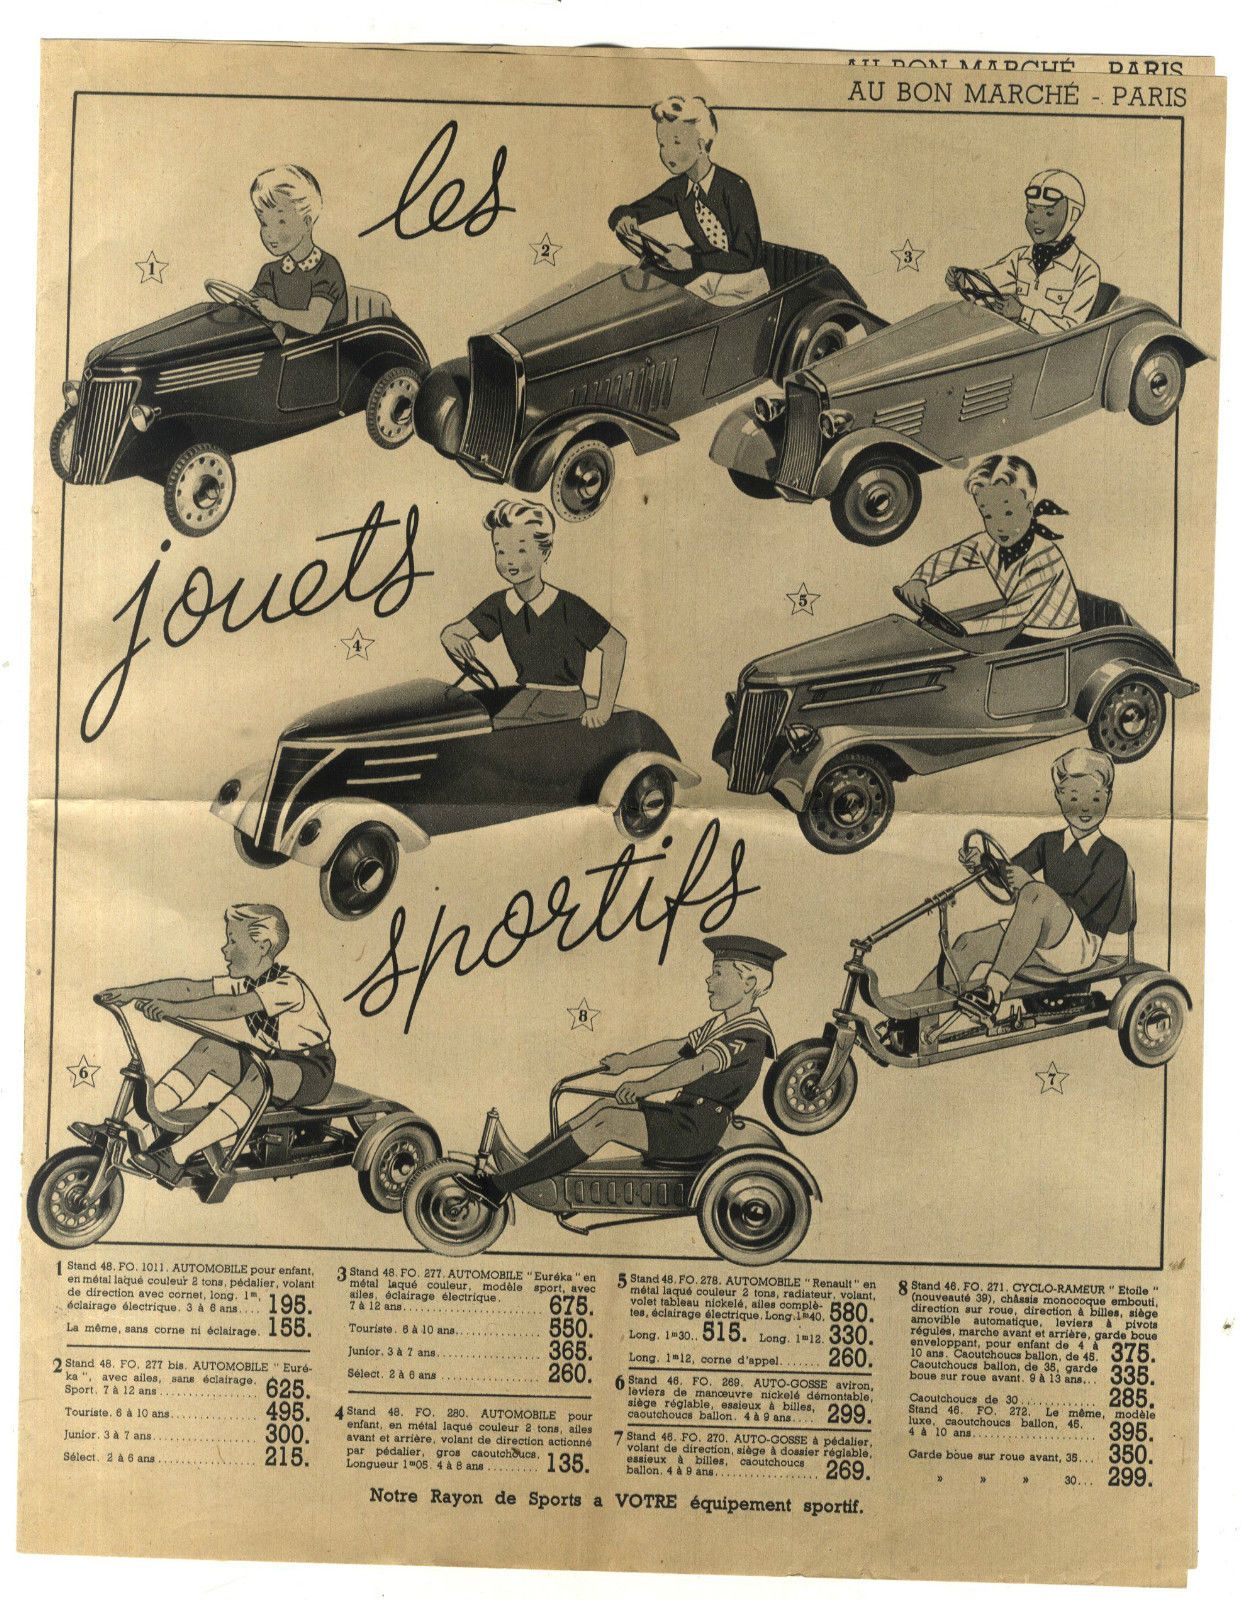 catalogue ancien au bon marche paris jouet sportif voiture cheval tir au pigeons ebay abba. Black Bedroom Furniture Sets. Home Design Ideas